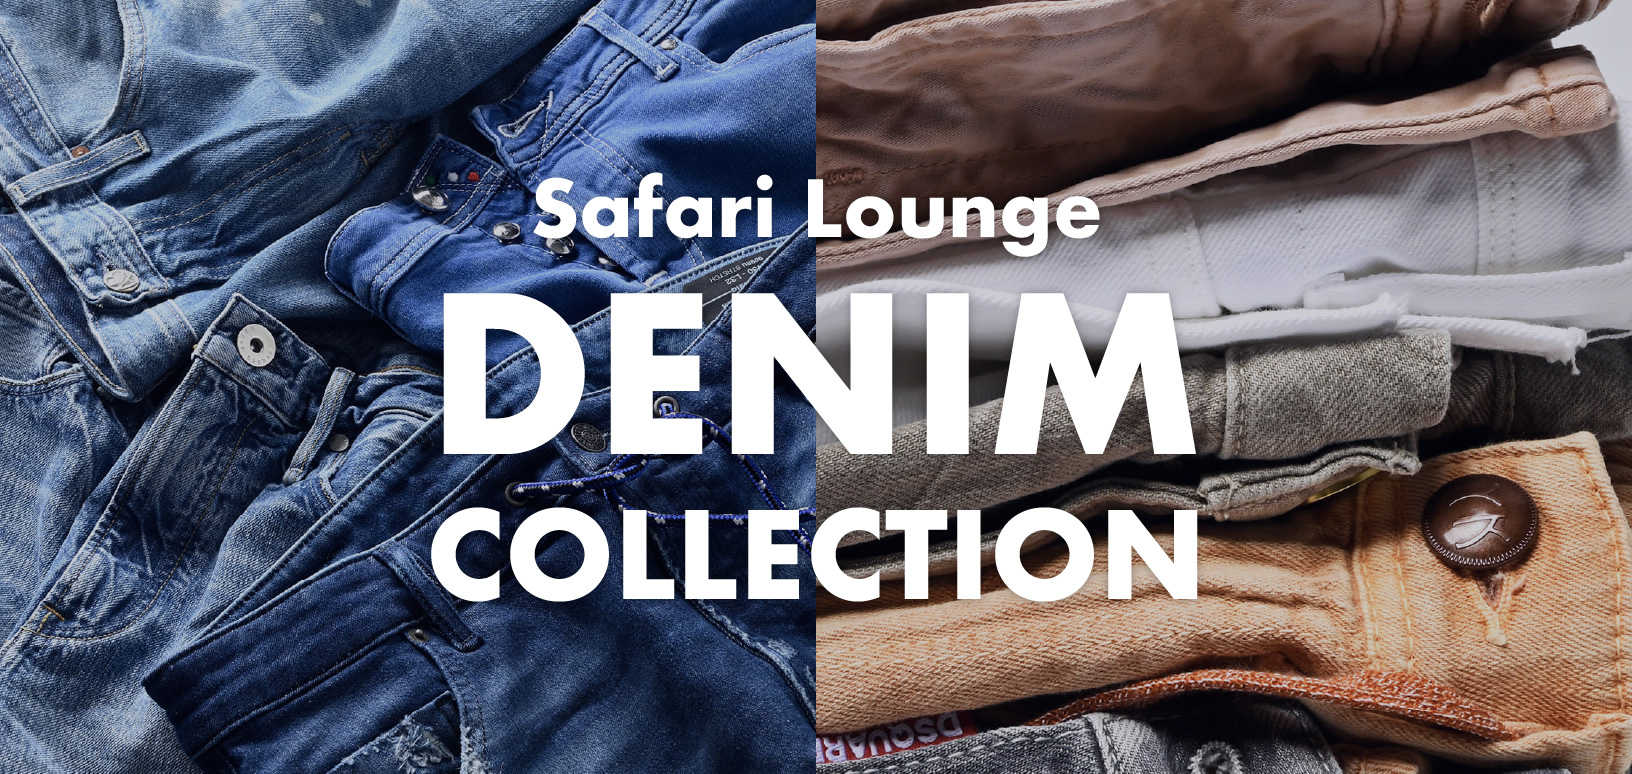 Safari Lounge DENIM COLLECTION